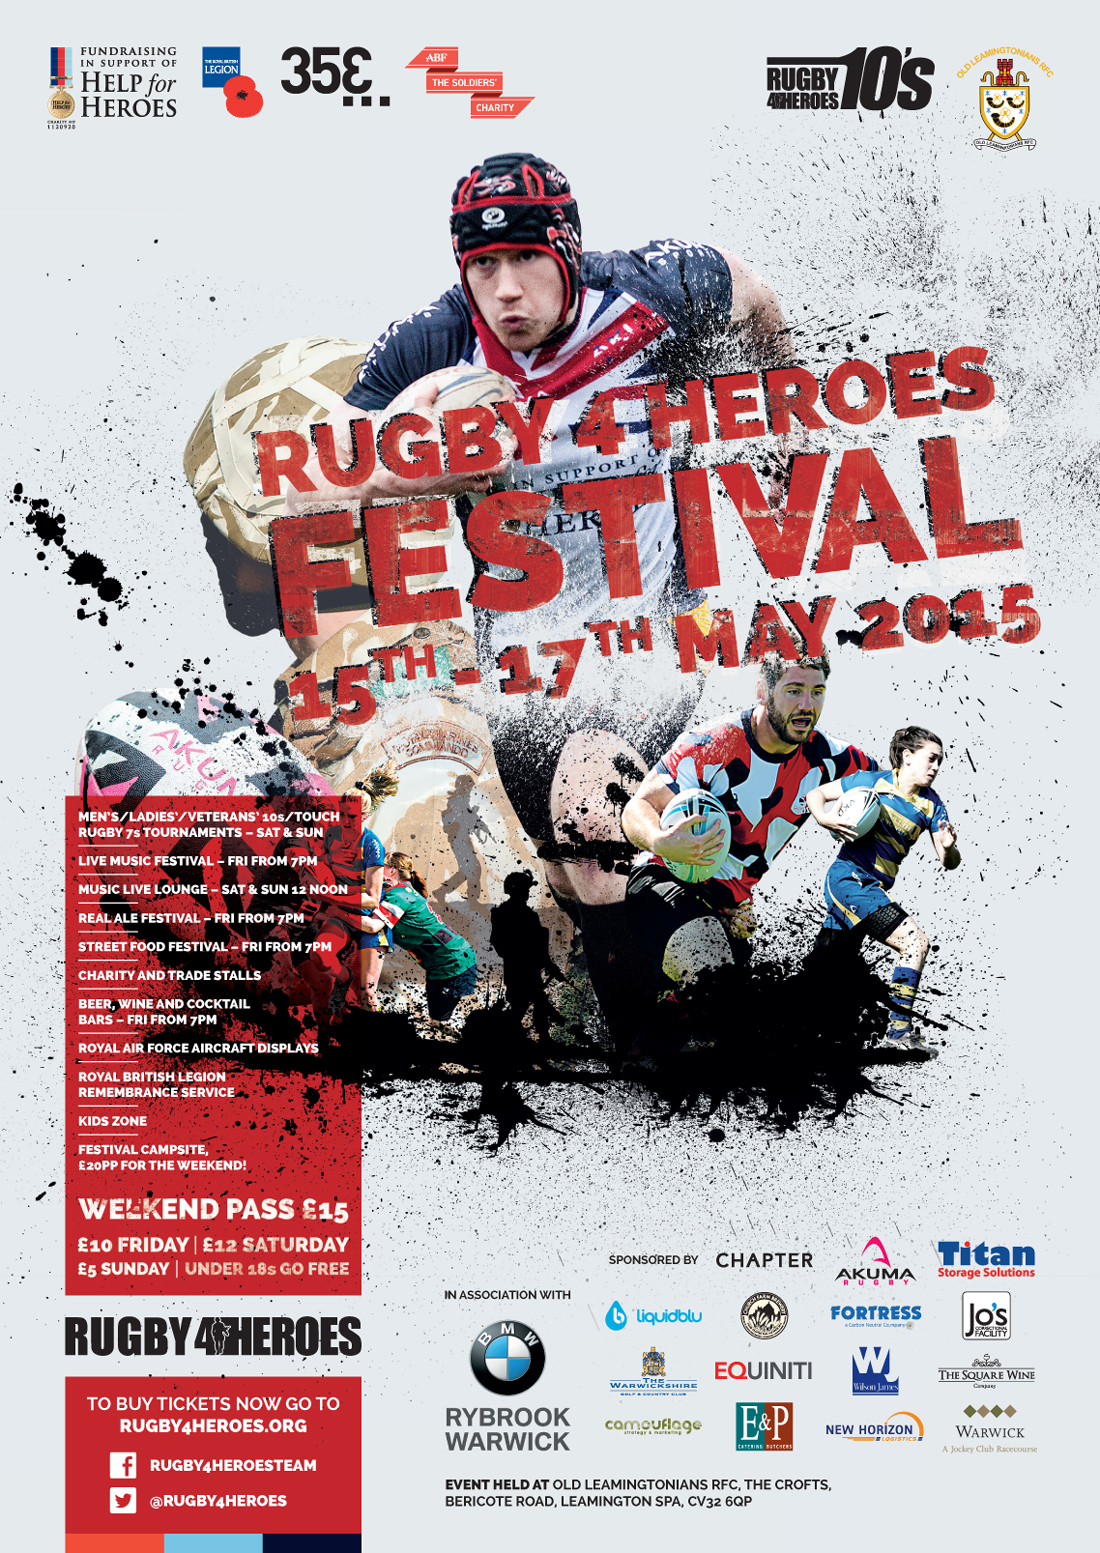 R4H_Festival_Rugby